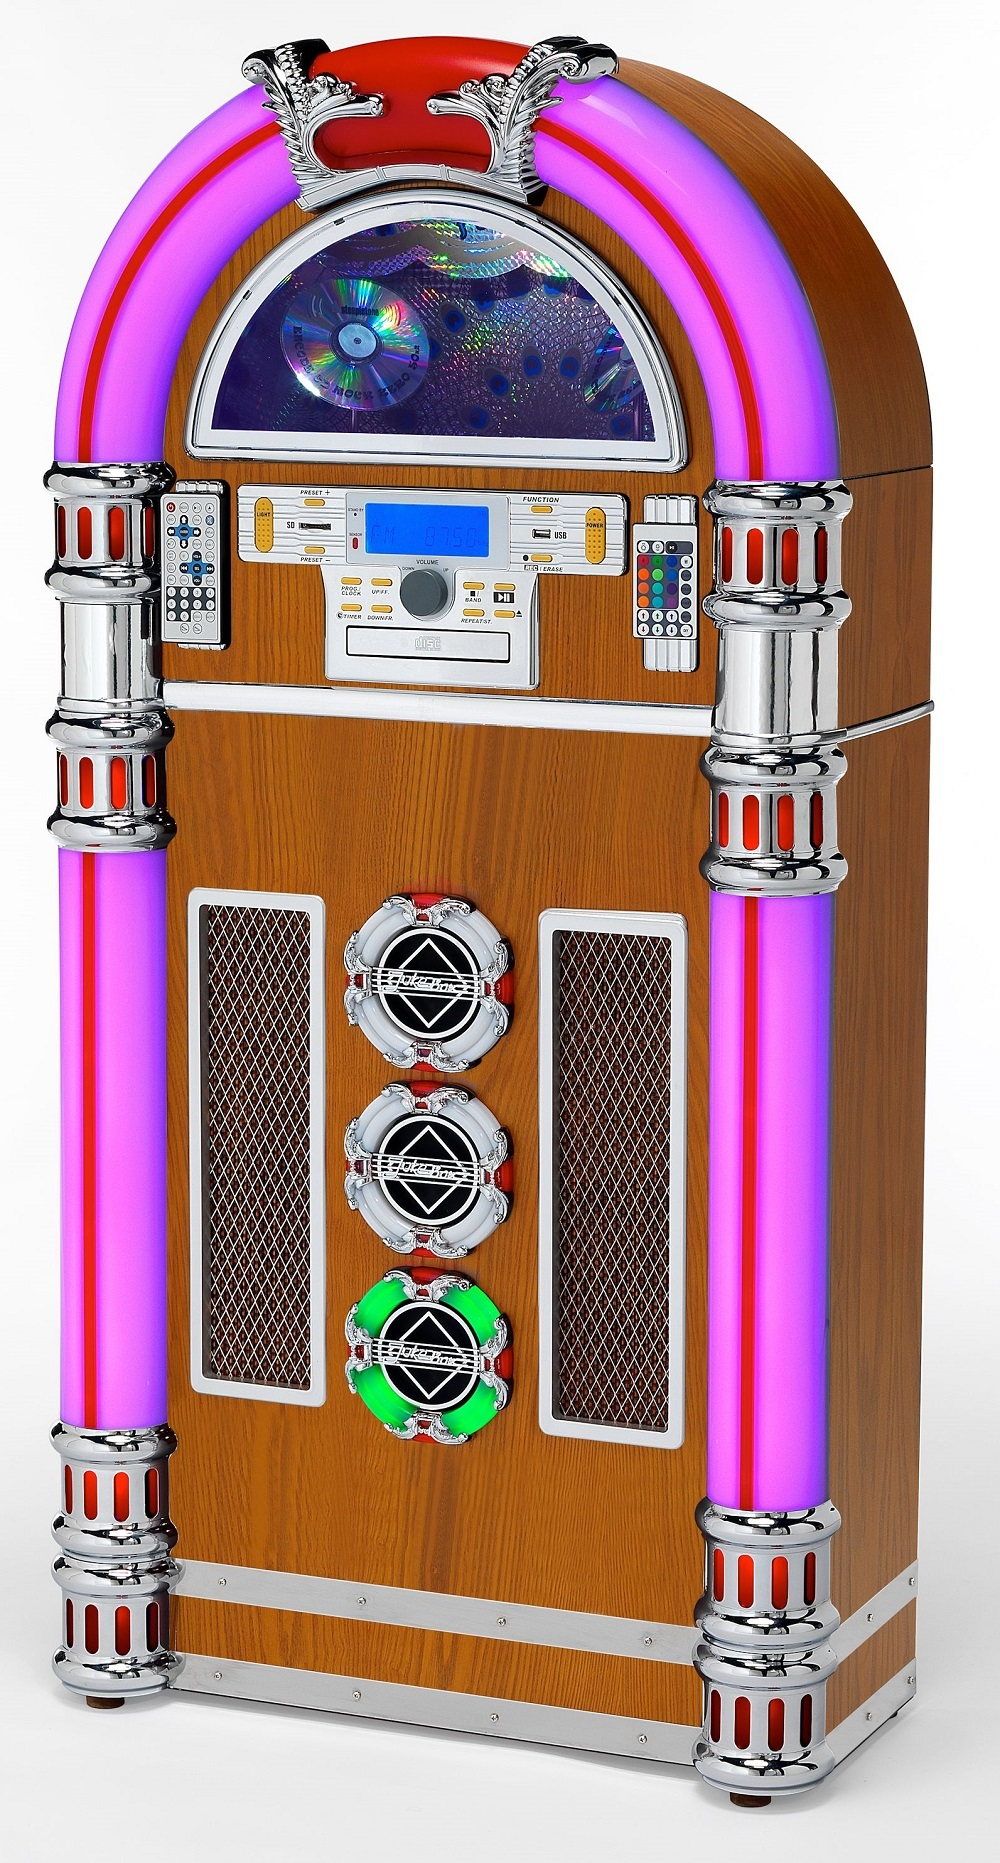 encode_cd_rock_50_two_jukebox_light[1]